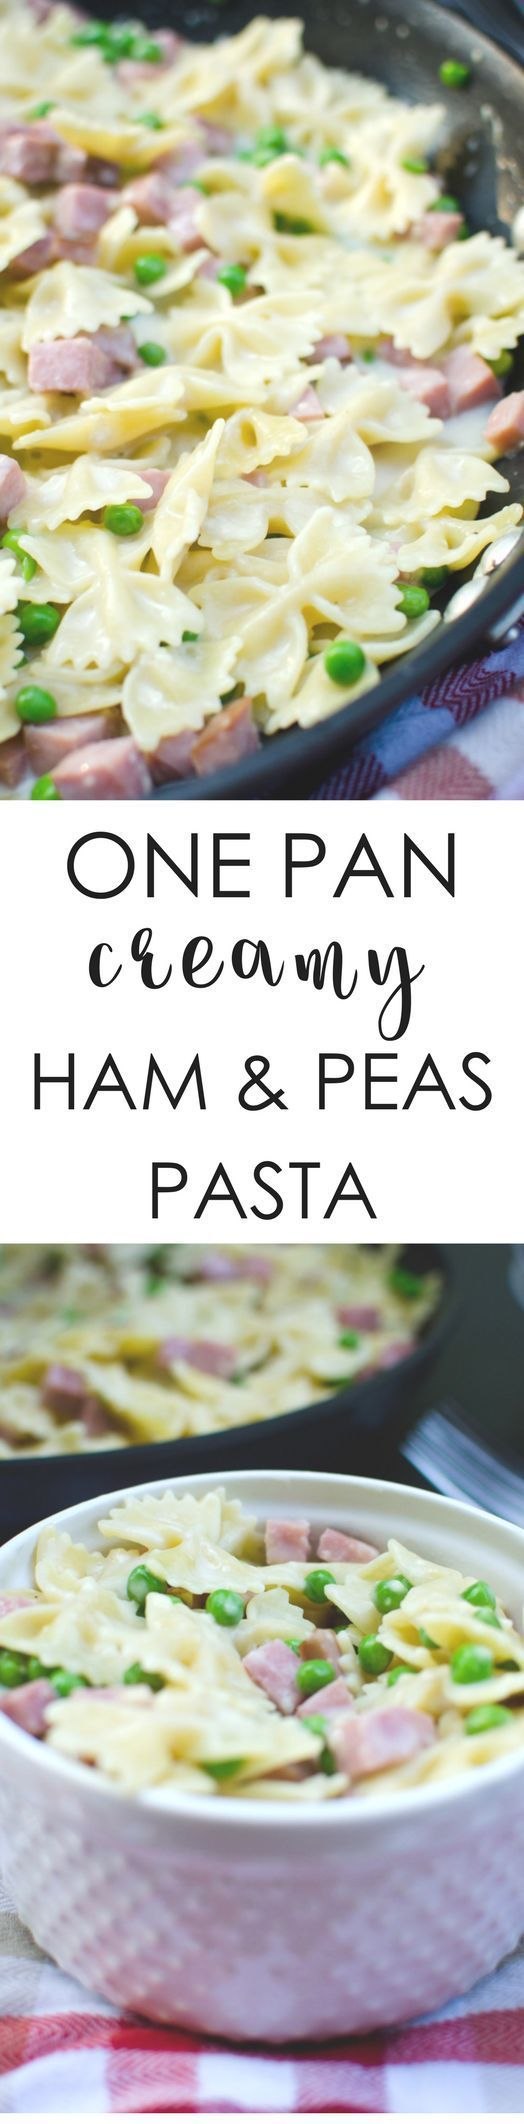 One pan creamy ham and peas pasta: delicious pasta perfect for a quick dinner. Loaded with ham, bowties, and peas!